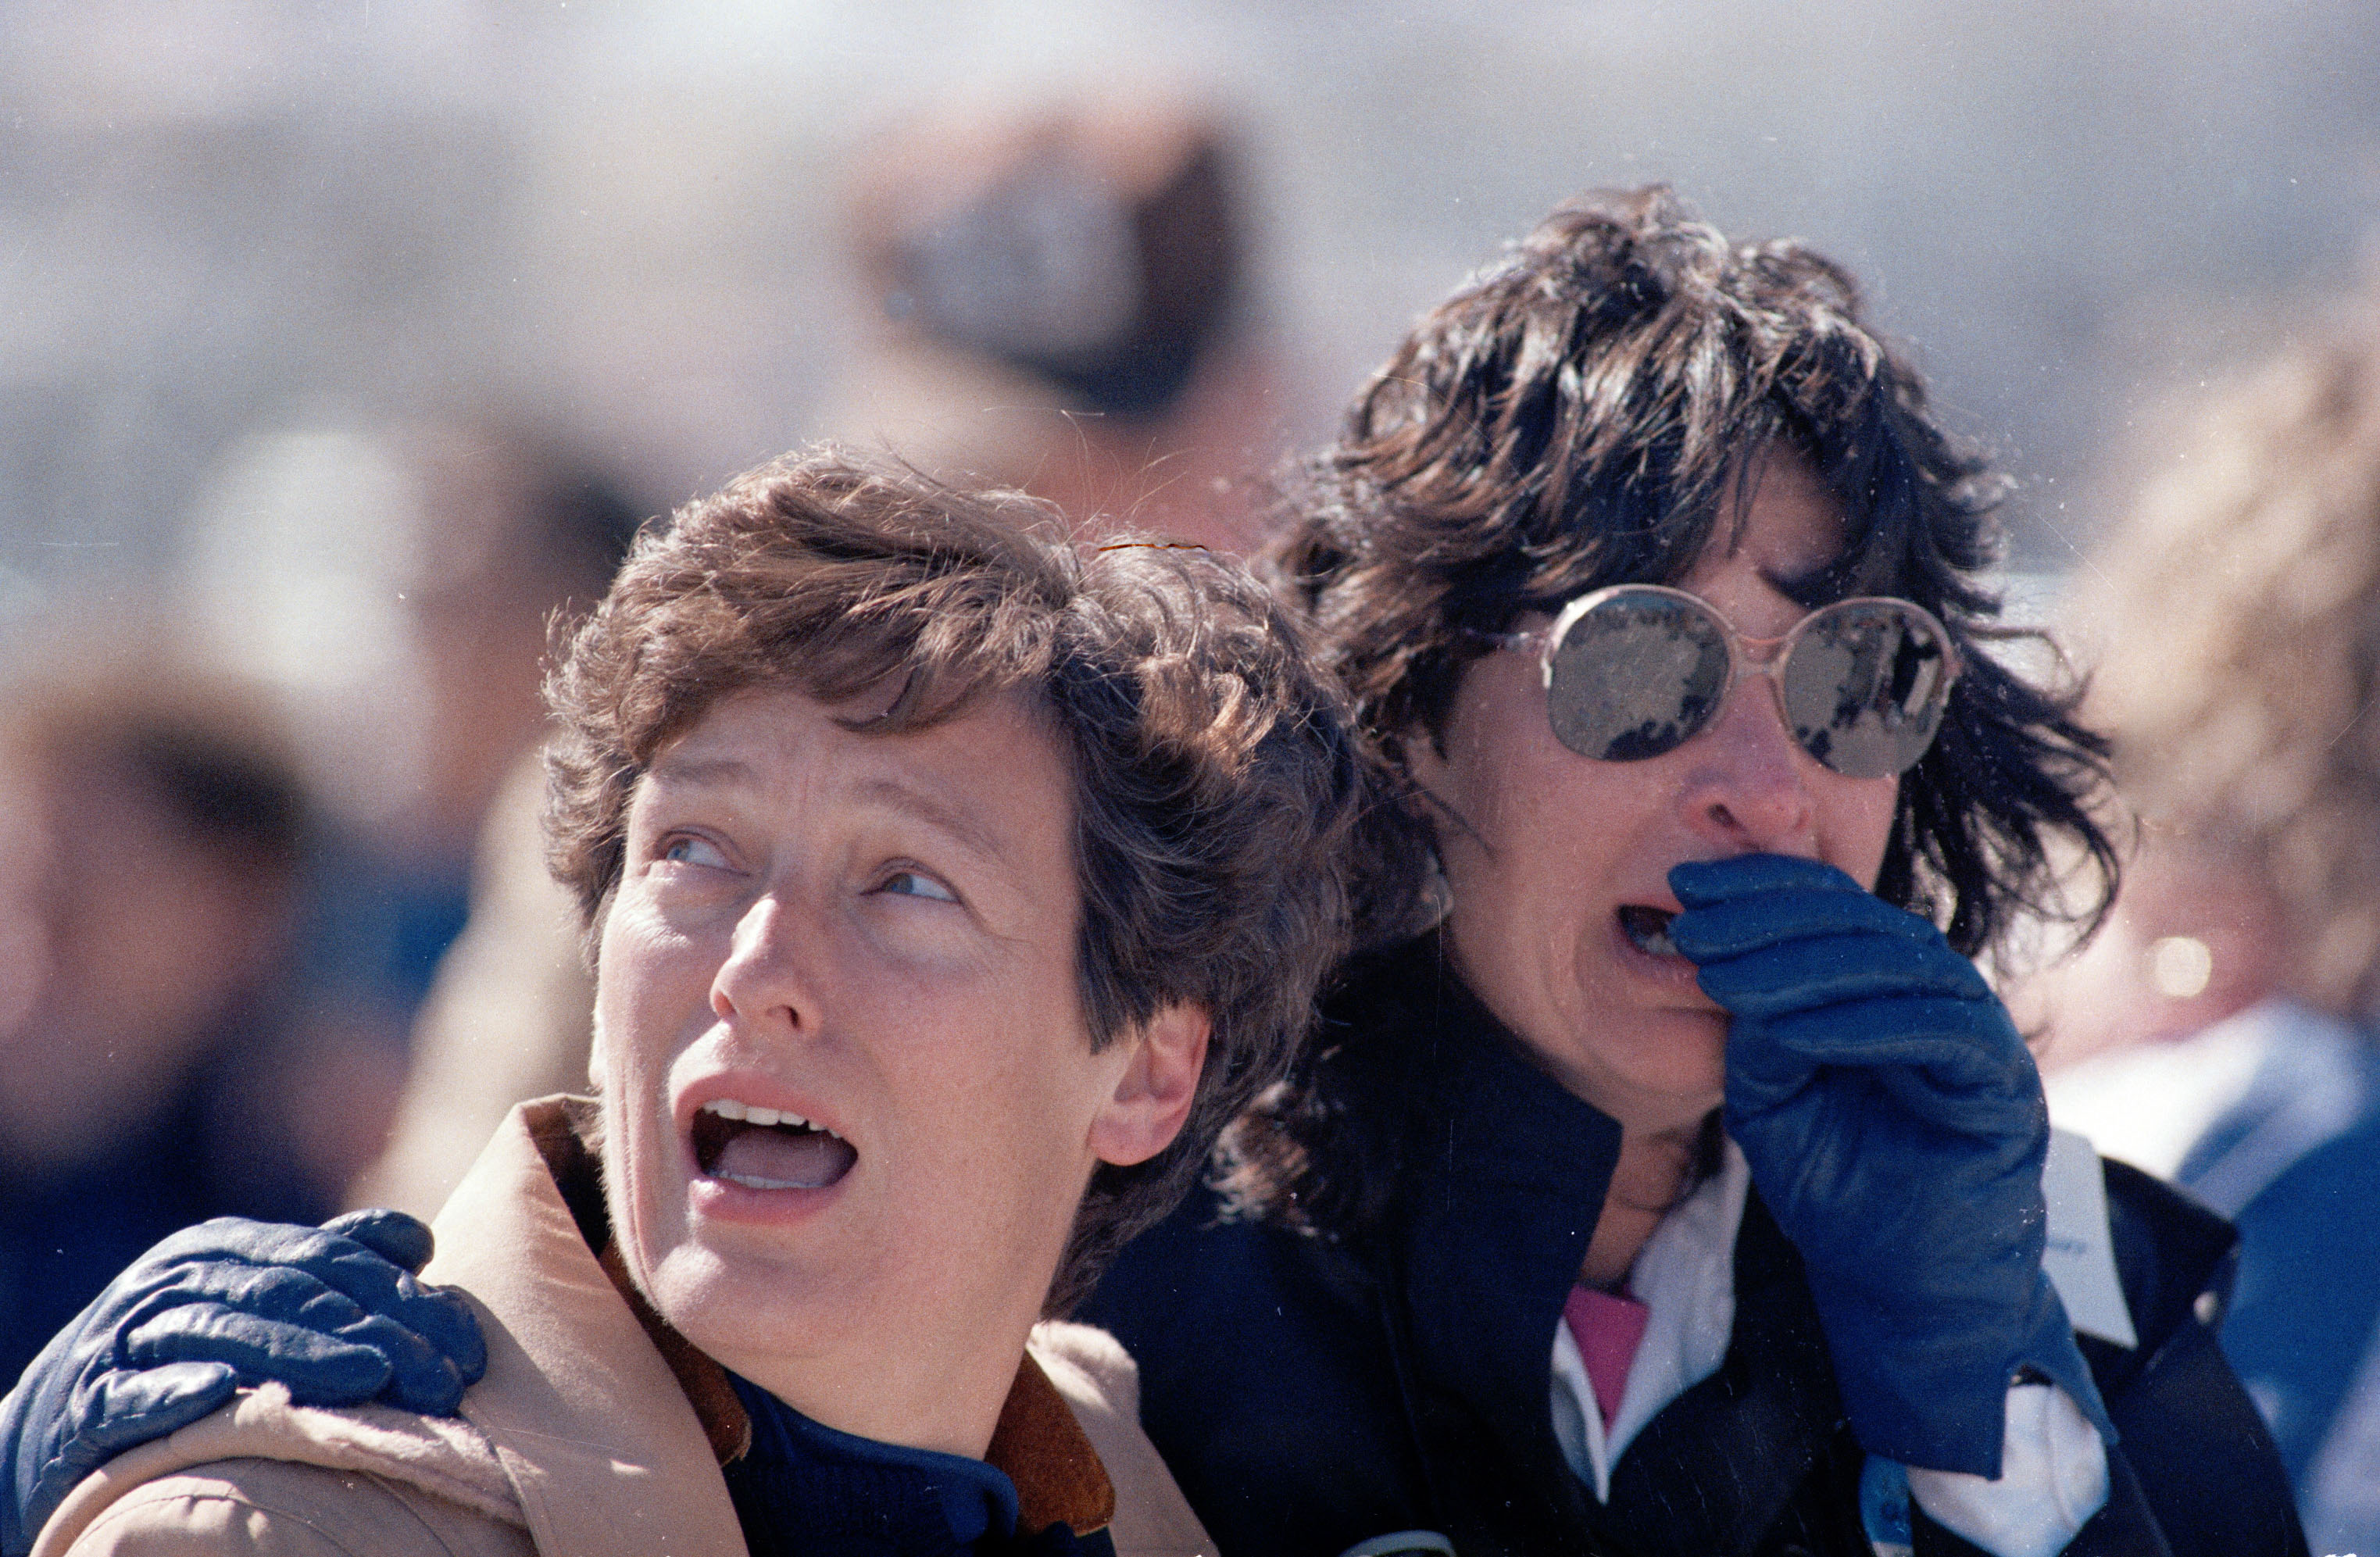 FILE - In this Jan. 28, 1986 file picture, spectators at the Kennedy Space Center in Cape Canaveral, Fla. react after they witnessed the explosion of the space shuttle Challenger. (AP Photo/File)